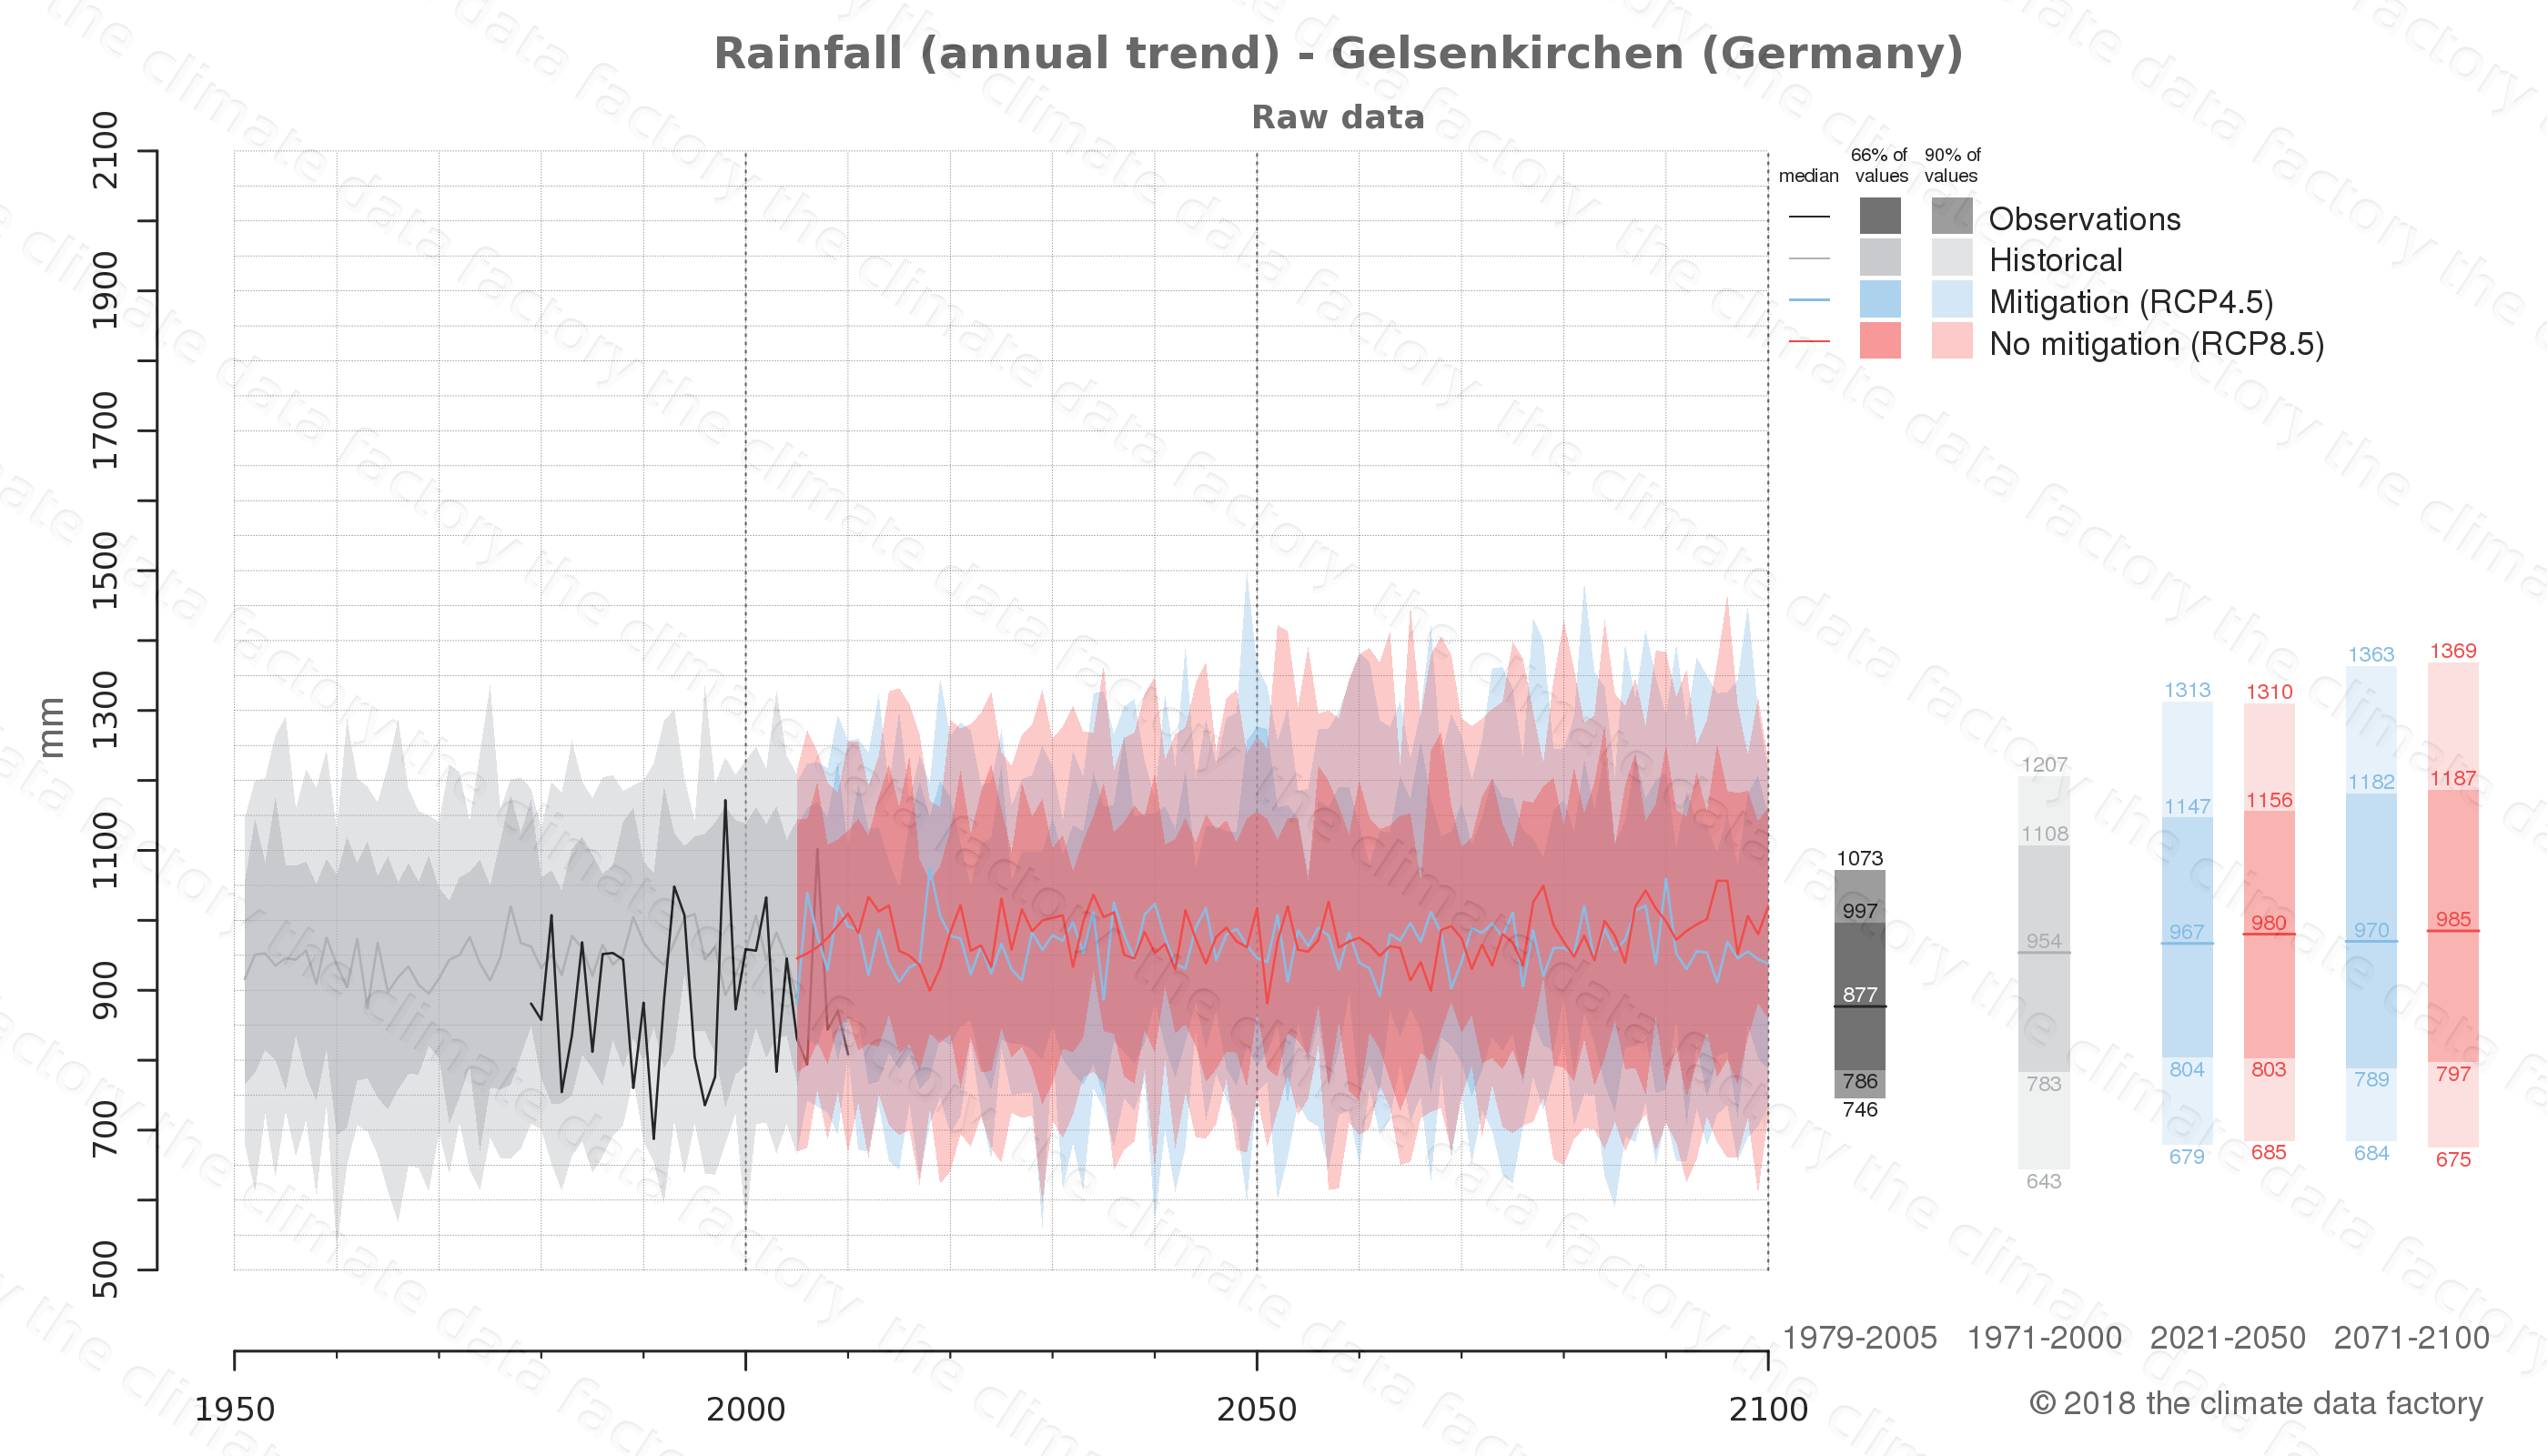 climate change data policy adaptation climate graph city data rainfall gelsenkirchen germany